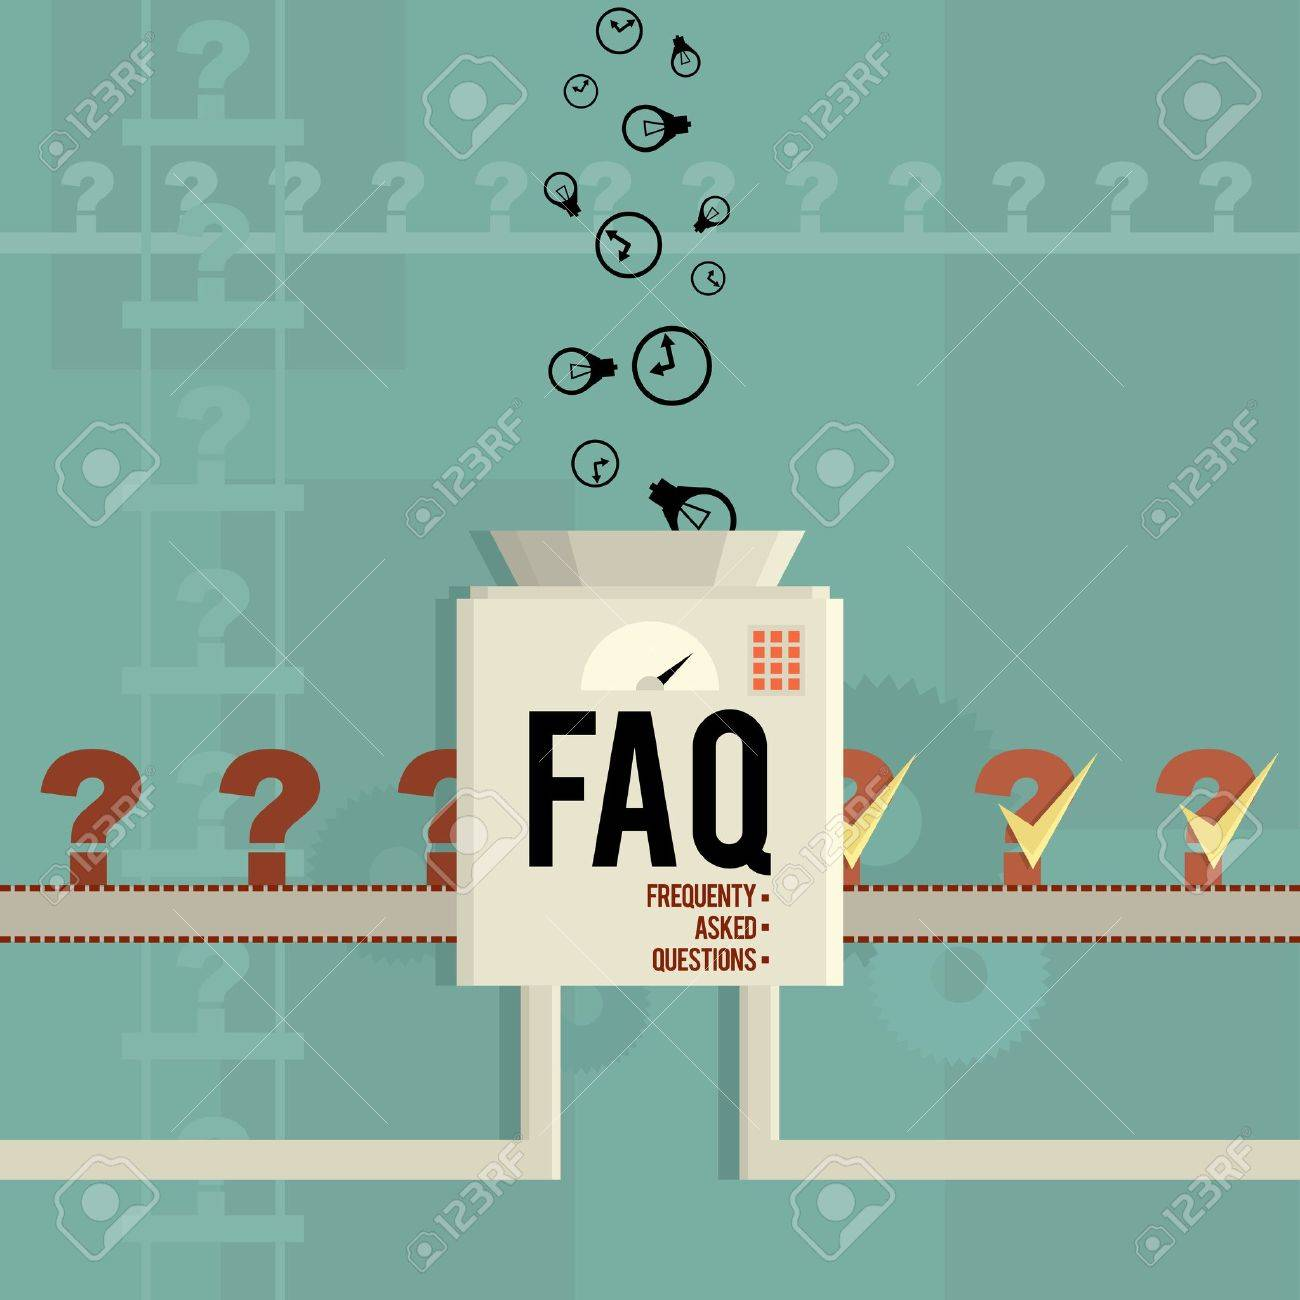 Vector illustration of a FAQ machine answering frequently asked questions Stock Vector - 19429090